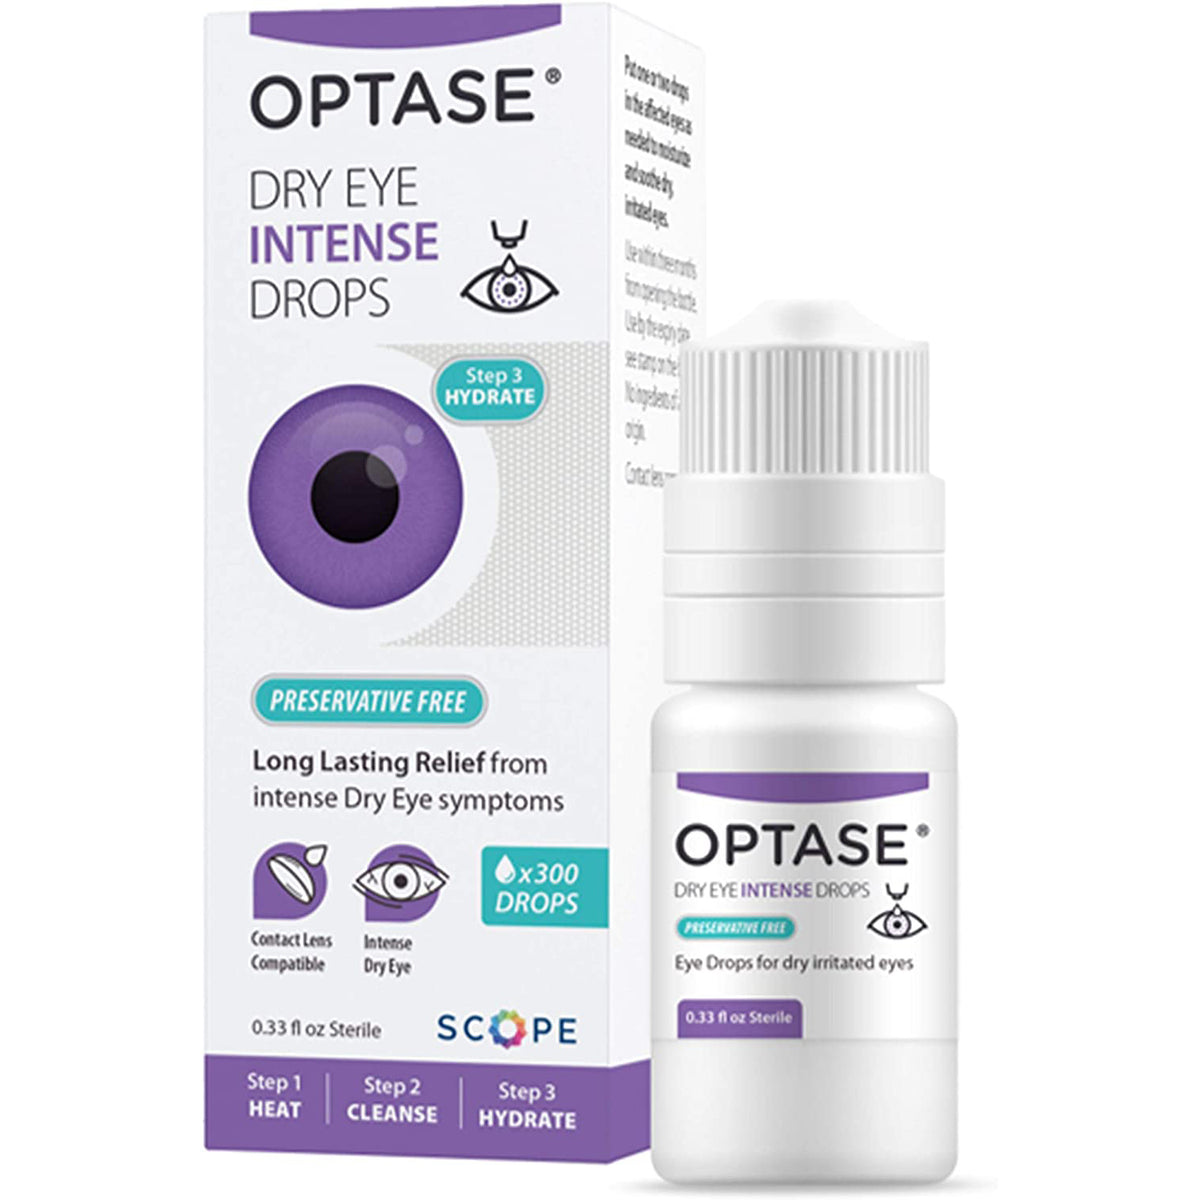 Optase Dry Eye Intense Eye Drops - Preservative Free - 0.33 fl oz - 300 dose Bottle